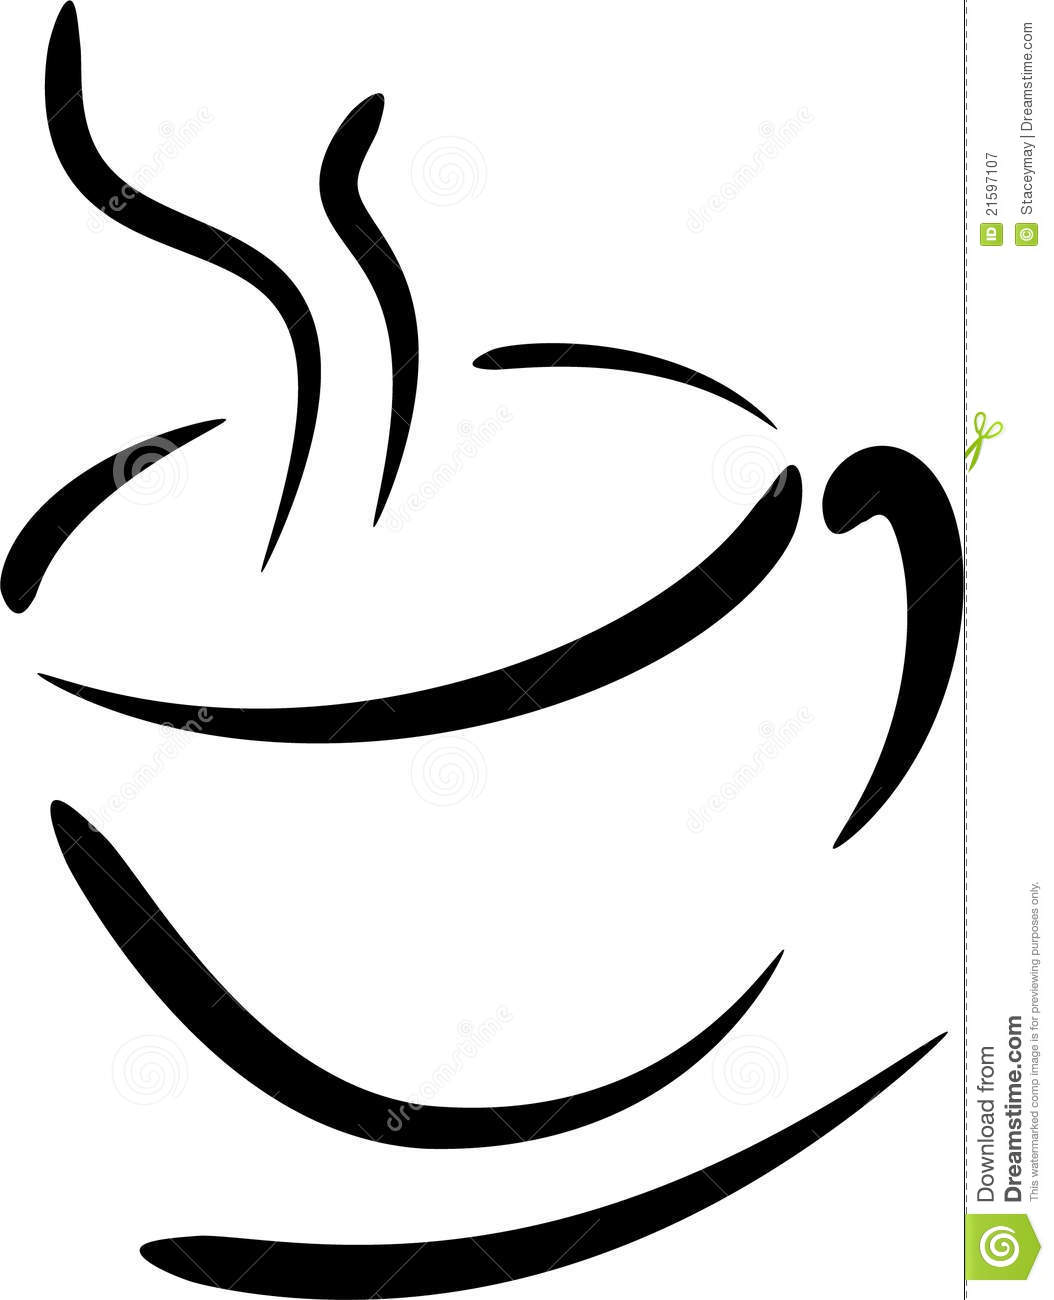 Coffee cup illustration. Clipart panda free images